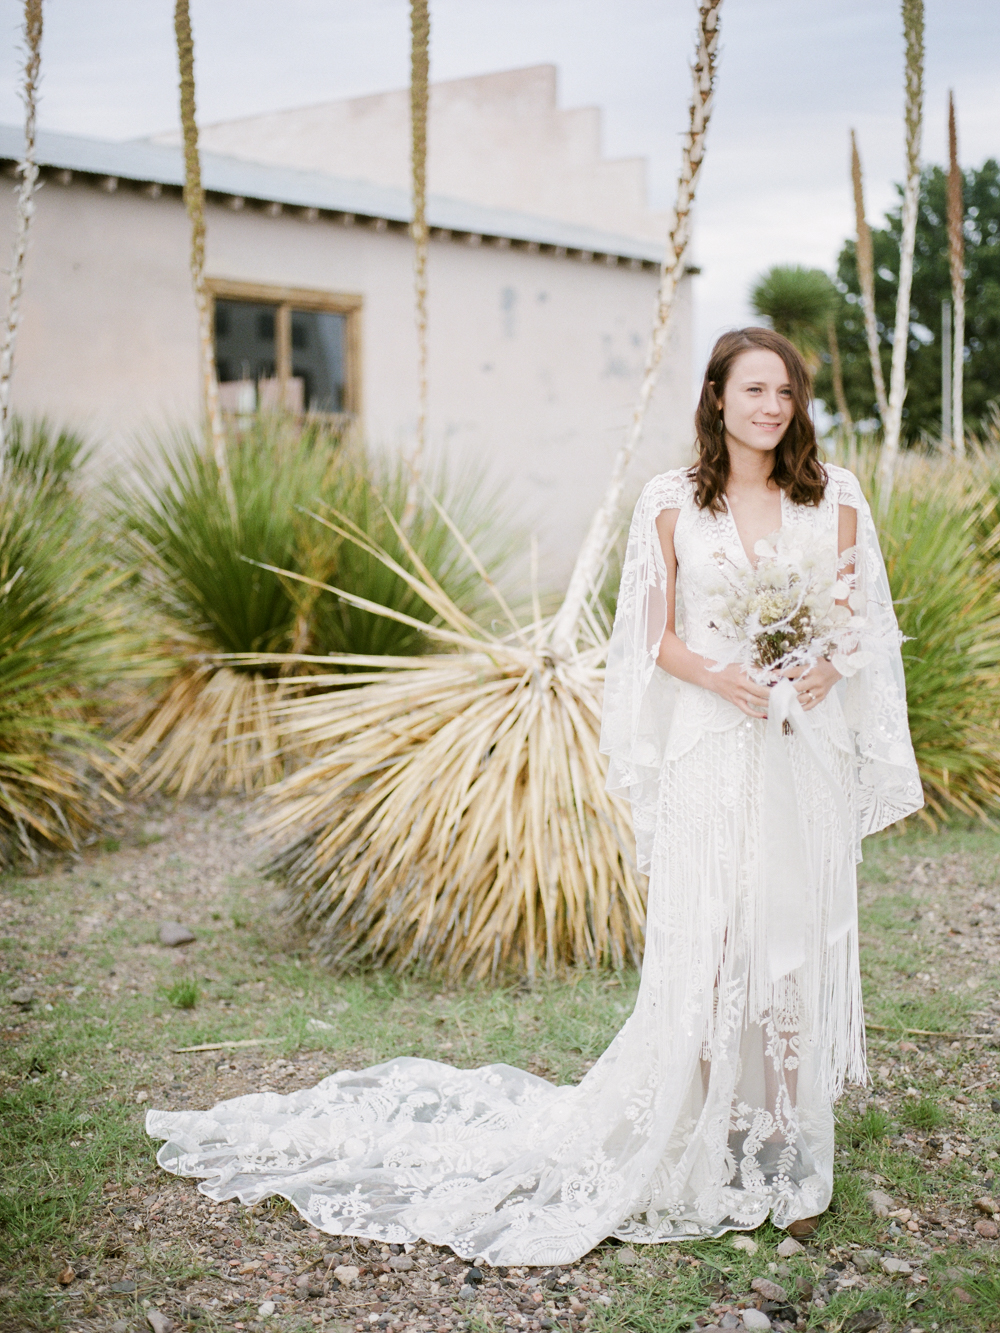 Marfa wedding photographer- destination wedding photographer-christine gosch - film photographer - elopement photographer-6.jpg